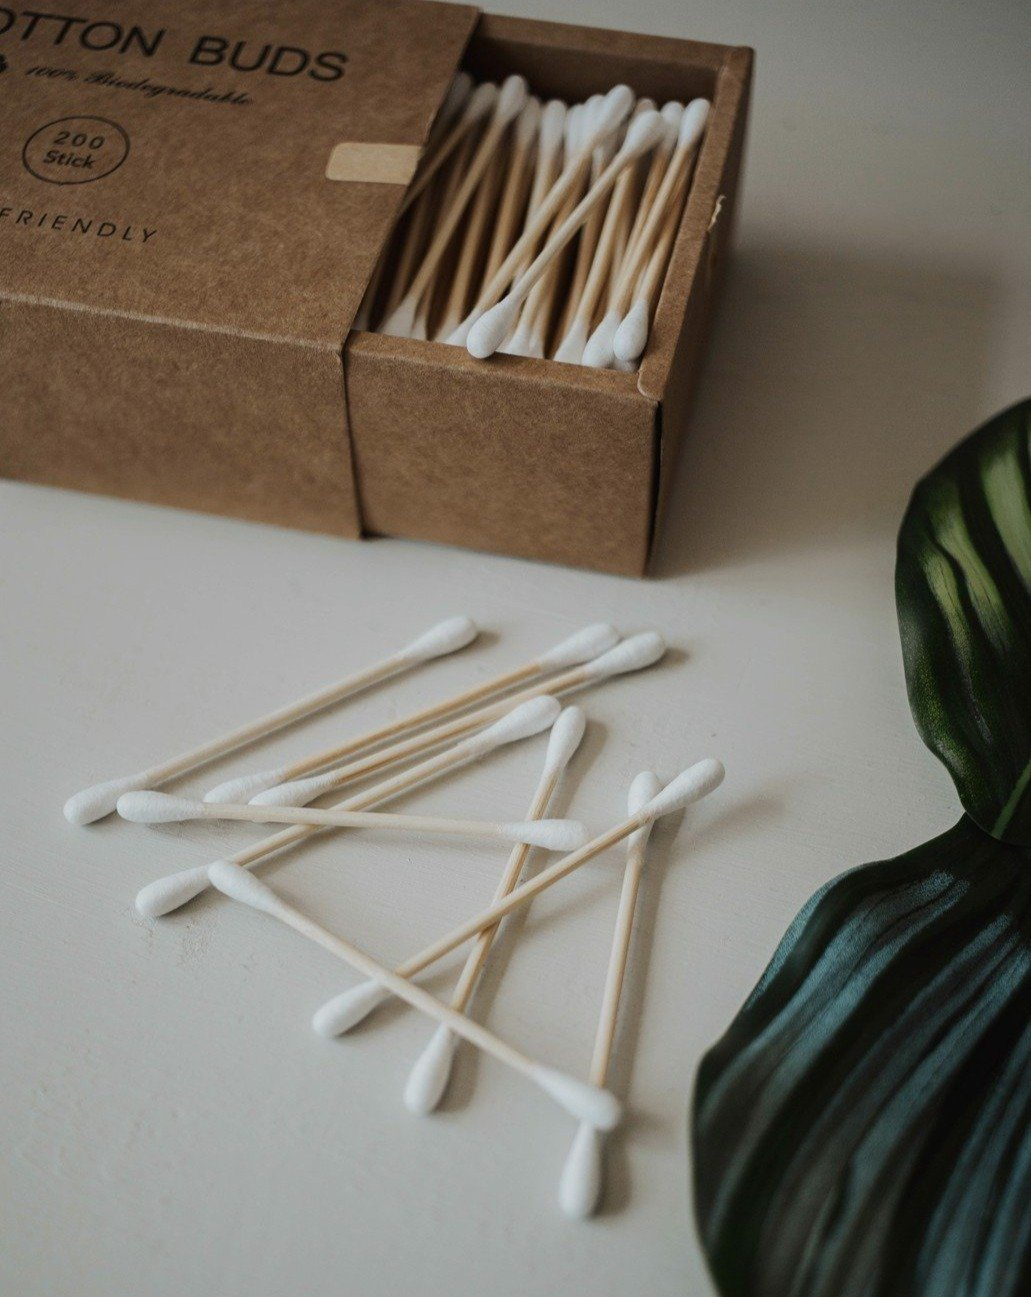 Bamboo Cotton Buds (200 Pack) Zero Waste MVMT